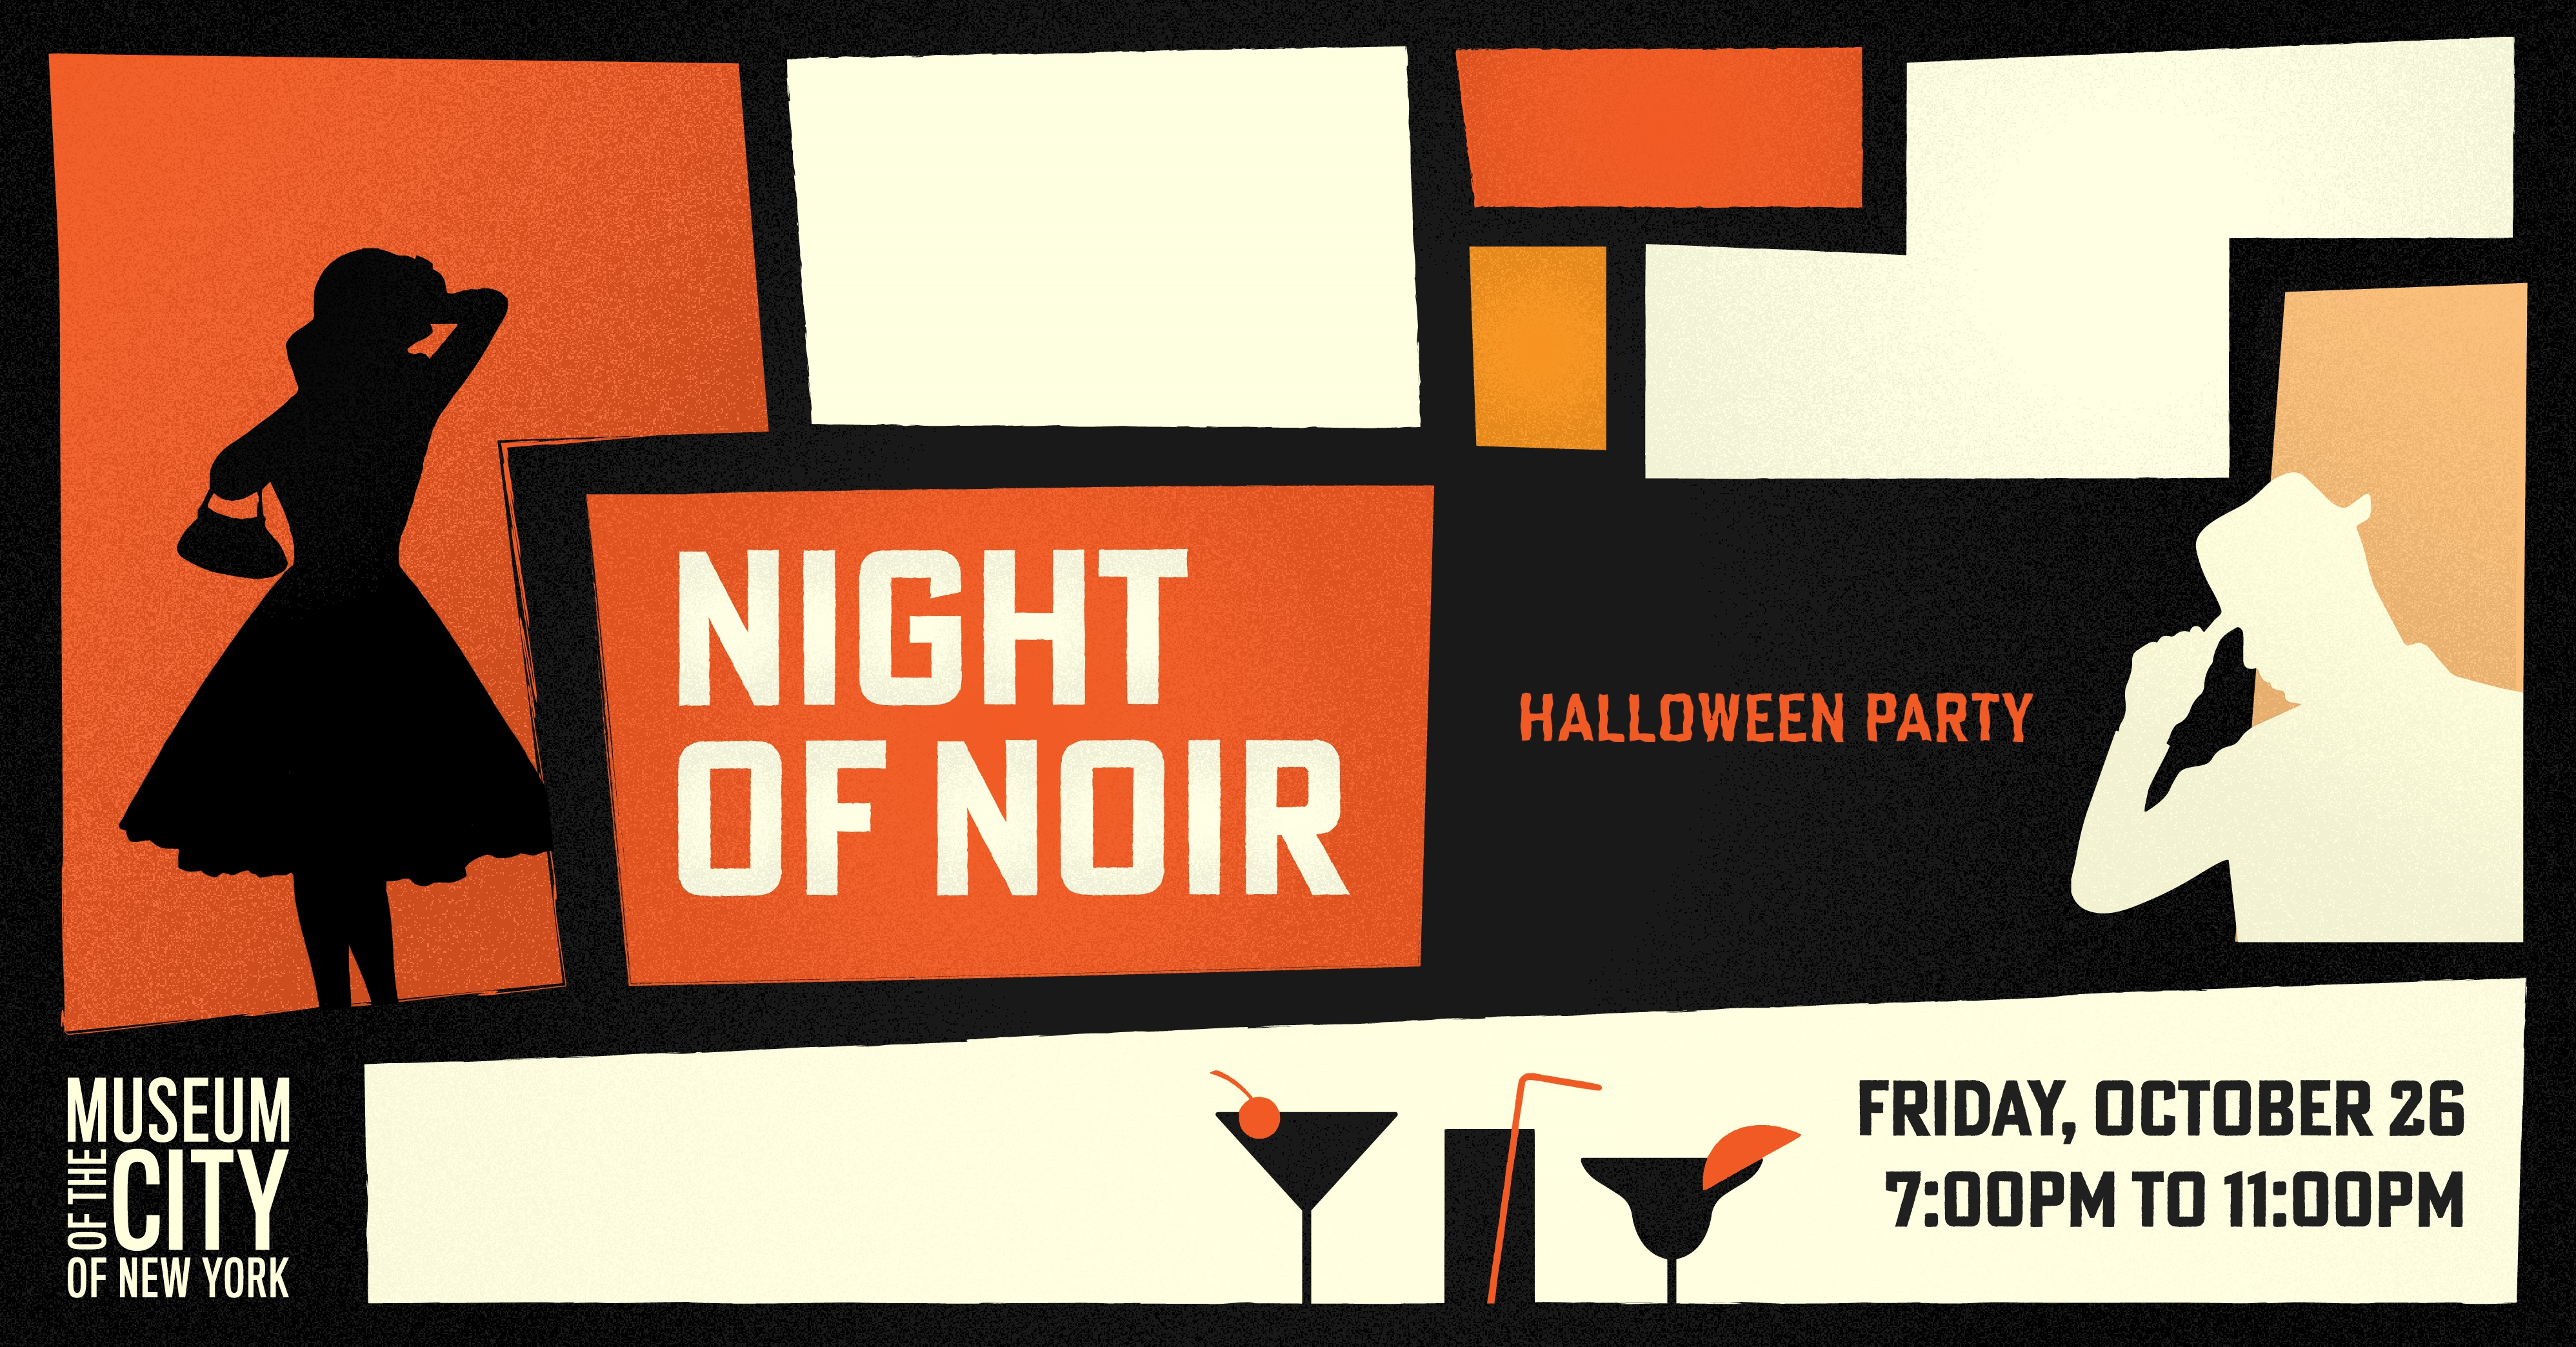 night of noir: a halloween party | museum of the city of new york